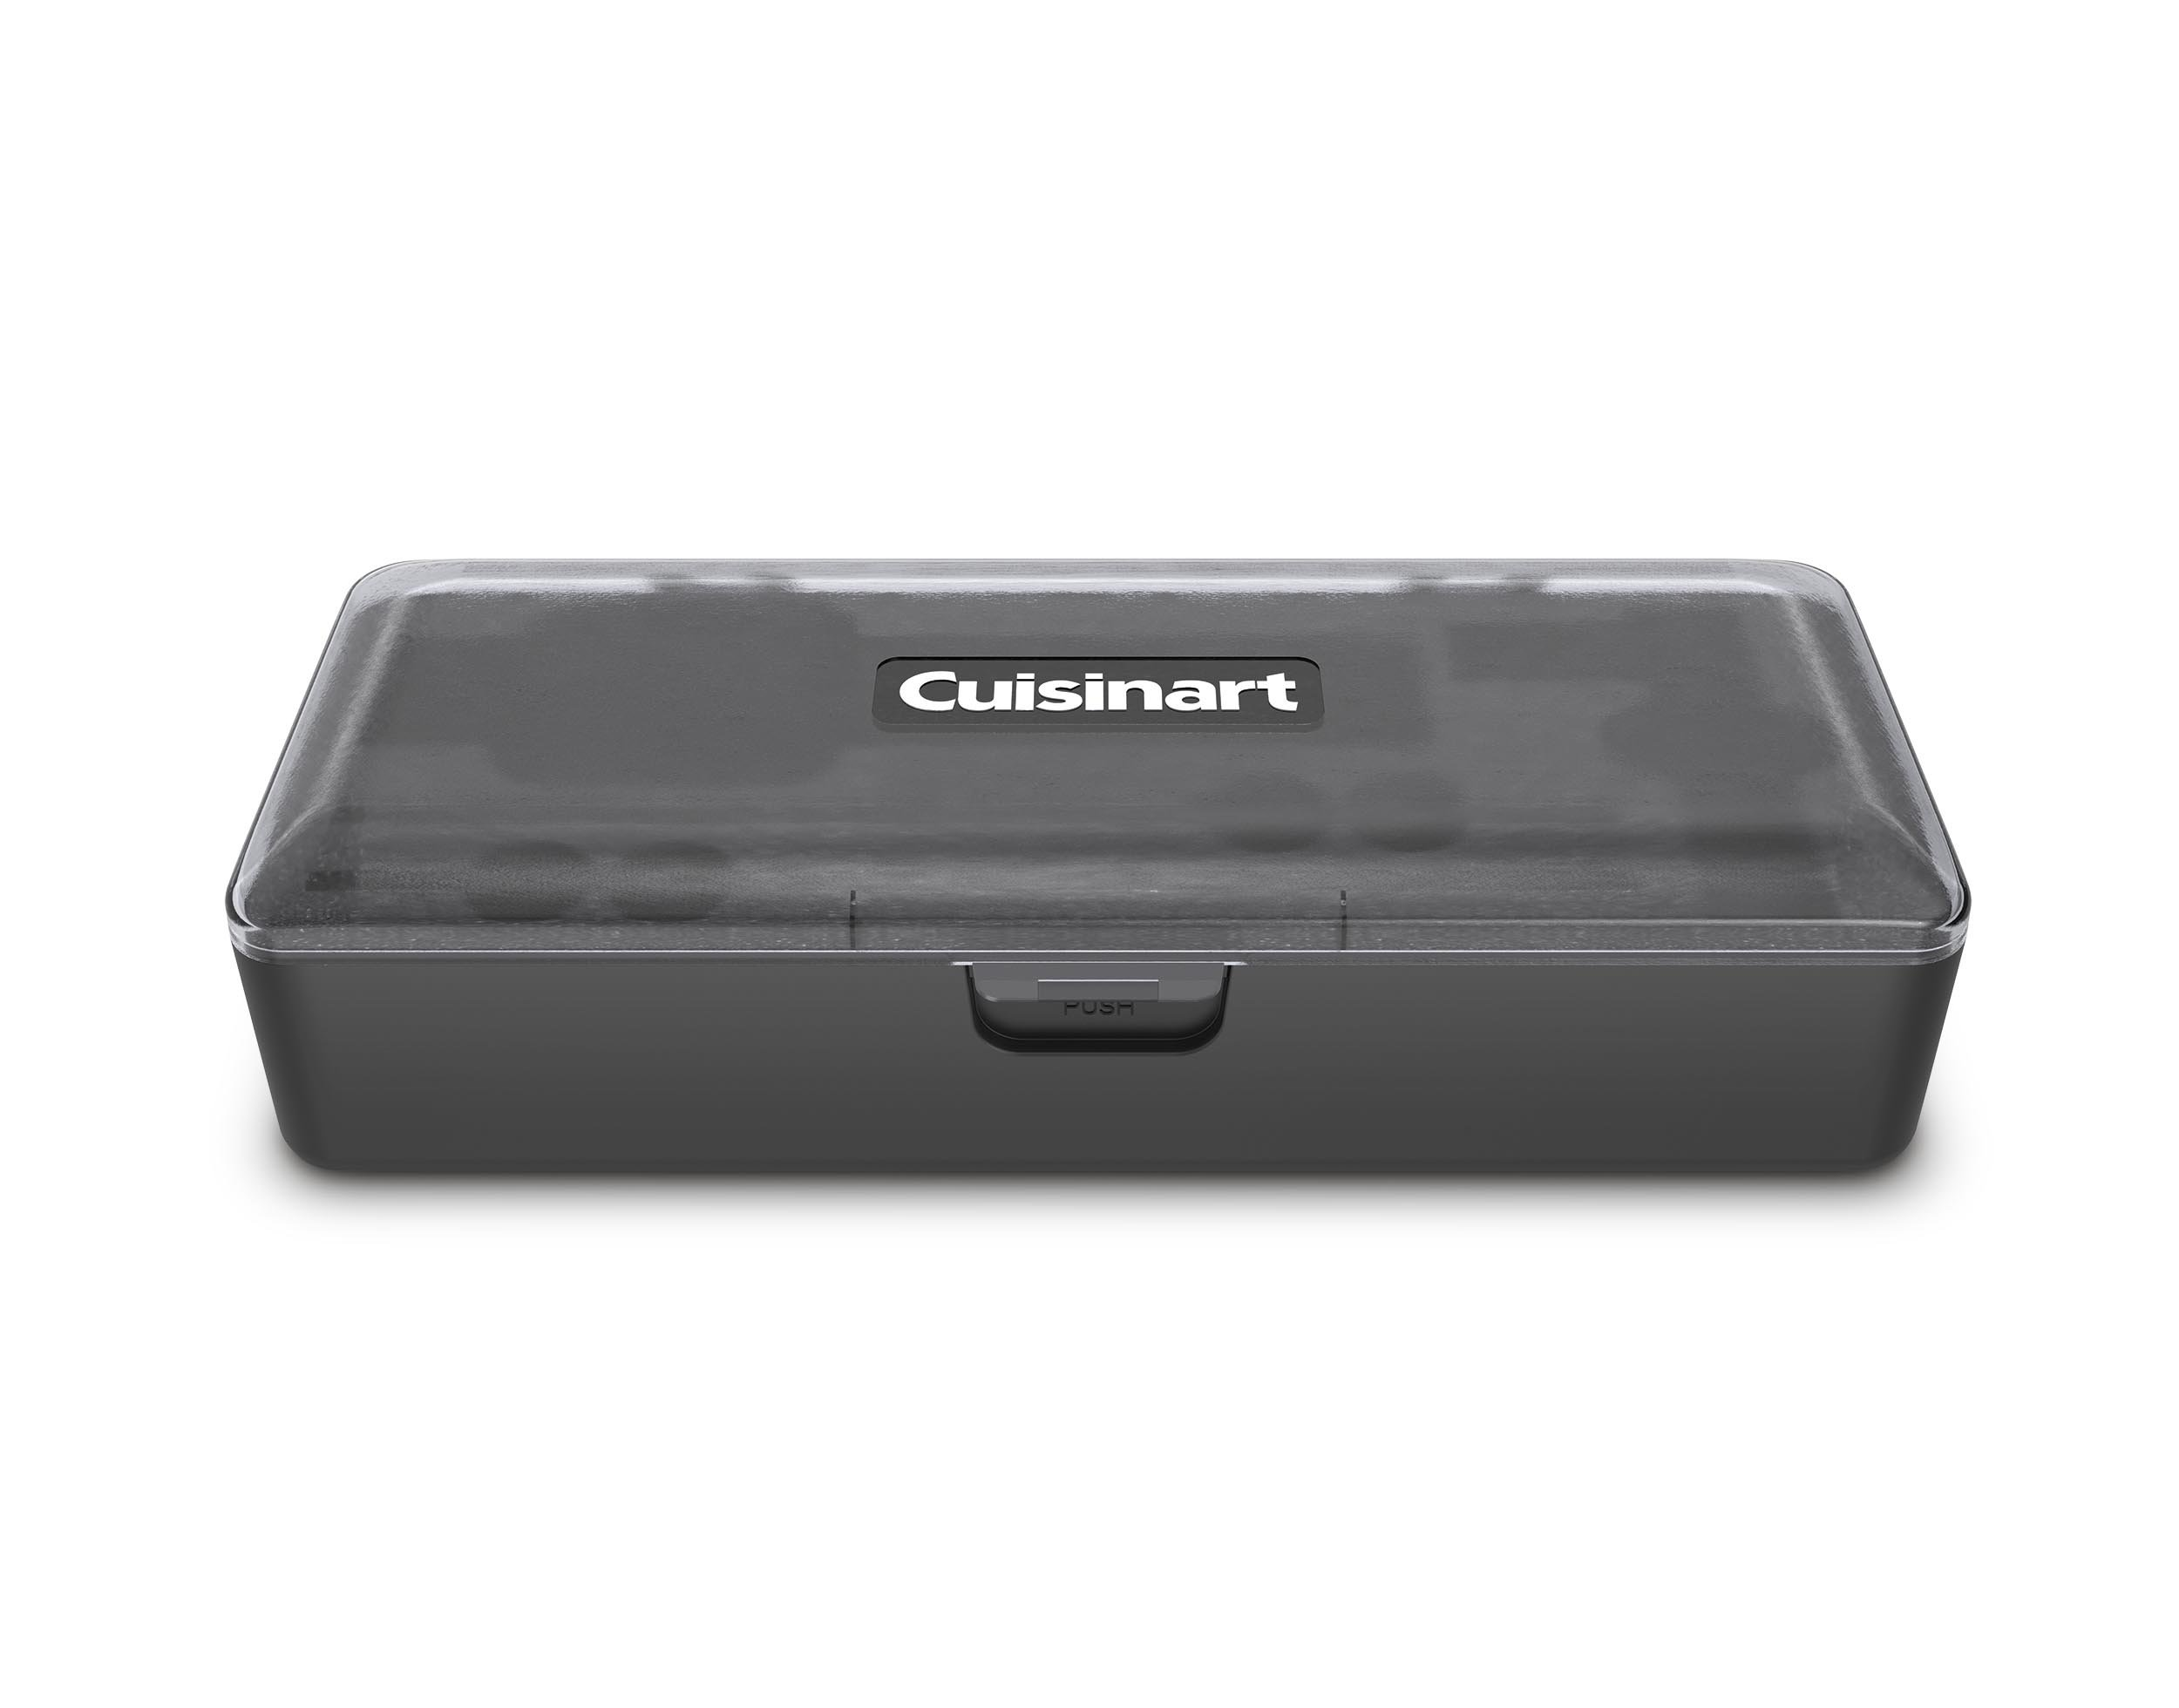 Cuisinart CEK-50 Cordless Electric Knife, Black by Cuisinart (Image #3)